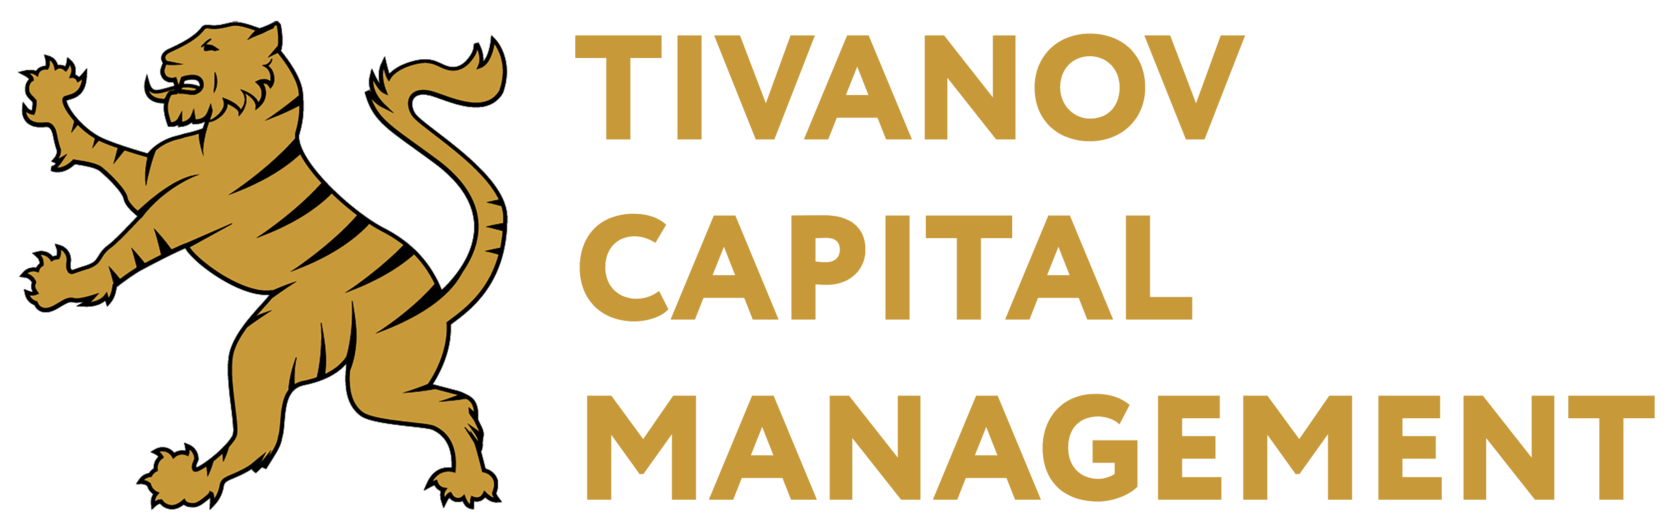 Tivanov Capital Management